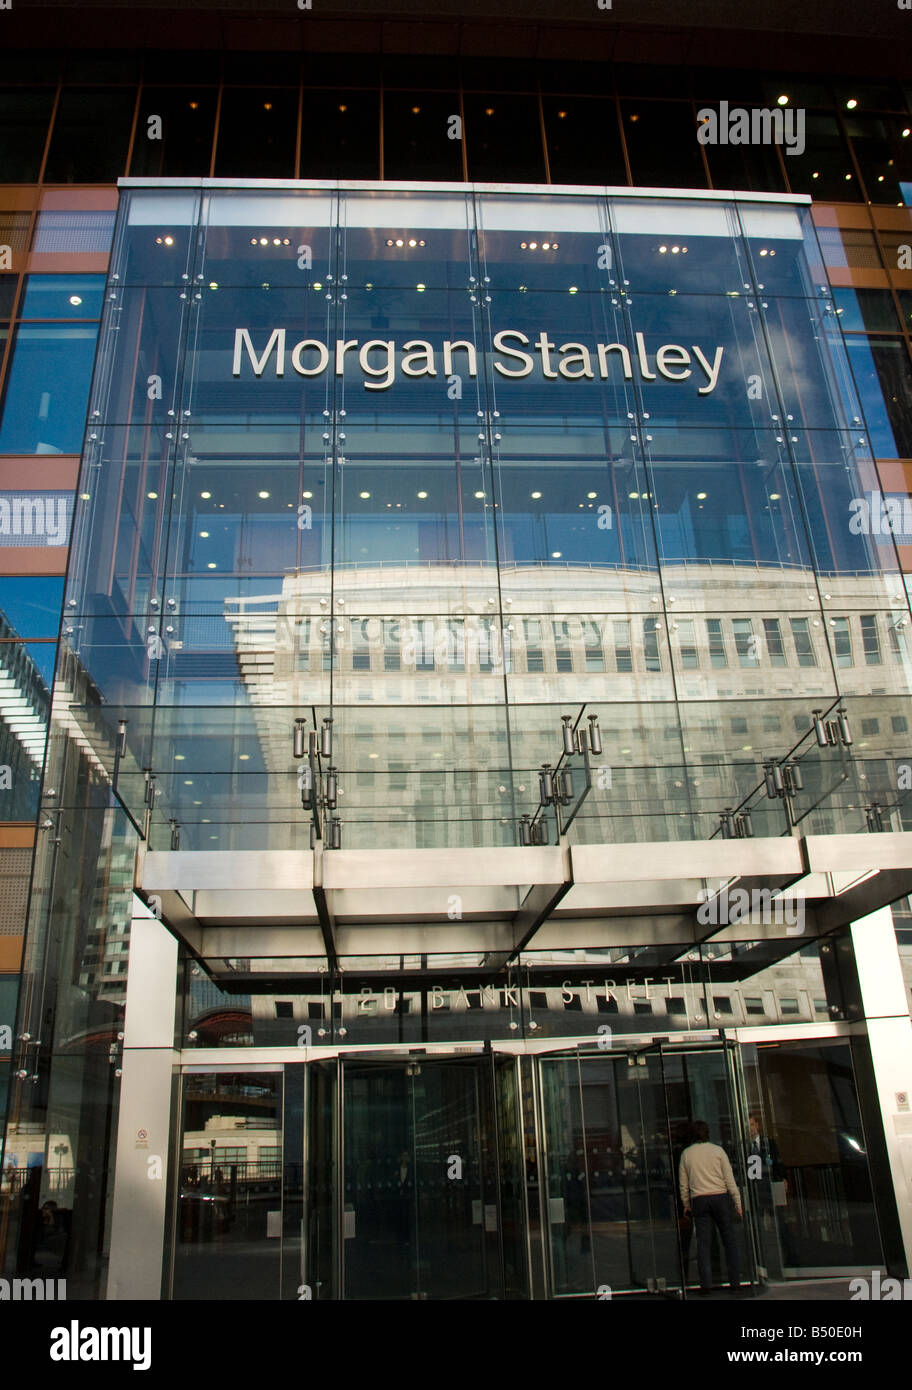 Morgan Stanley in Bank Street Docklands London Stock Photo: 20294641